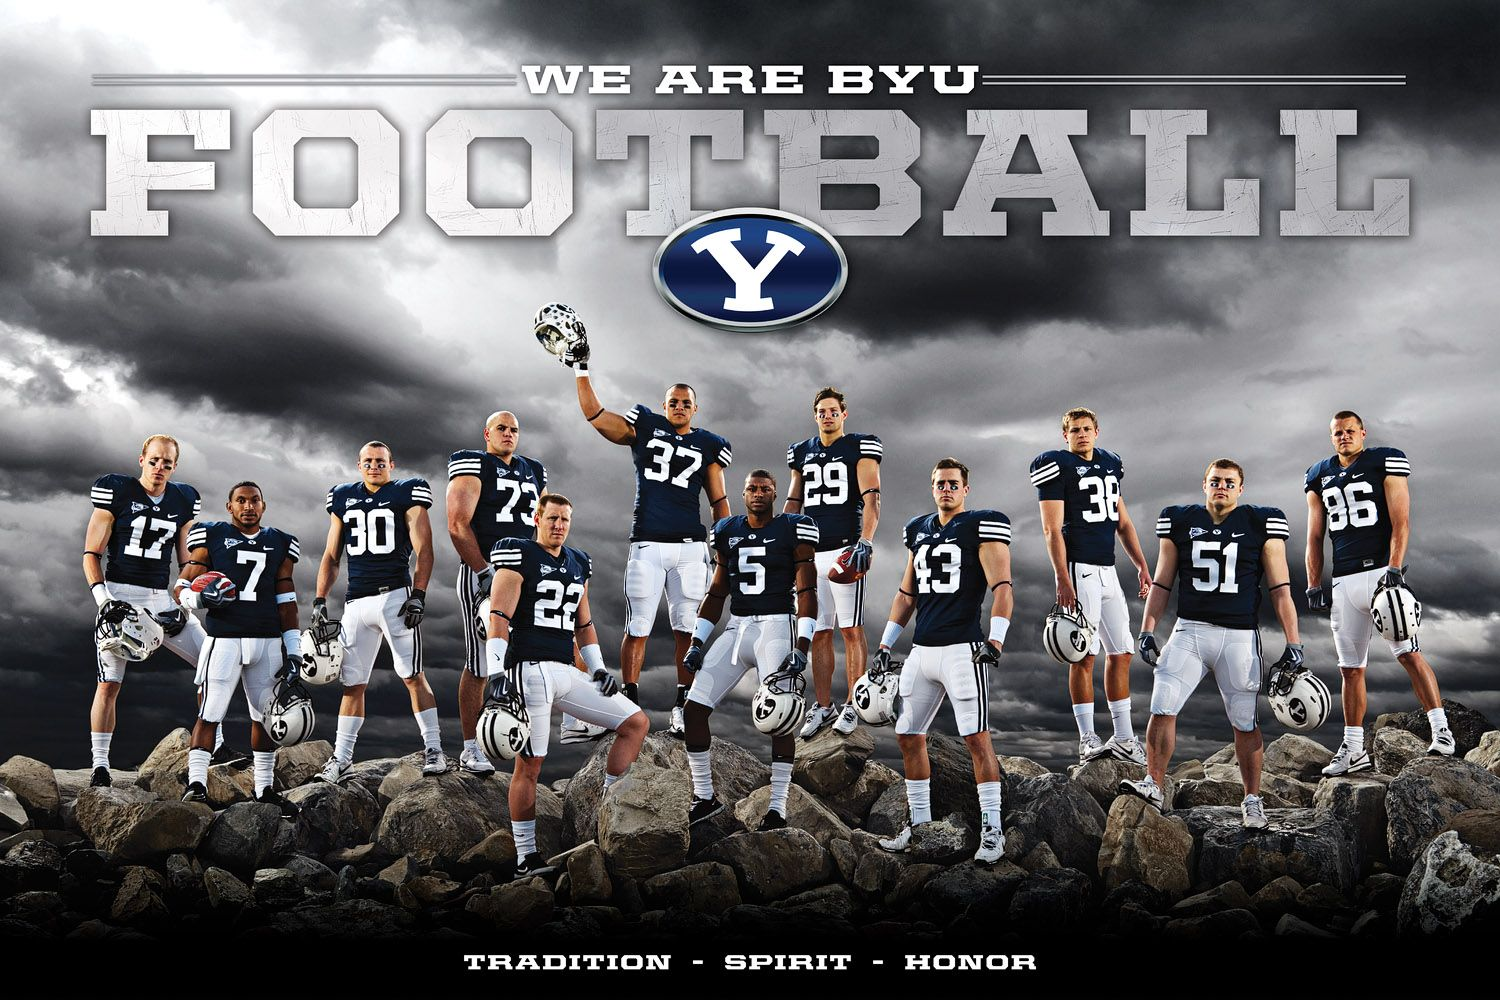 2010 Byu Football Schedule Poster Senior Football Banners Football Team Pictures Byu Football